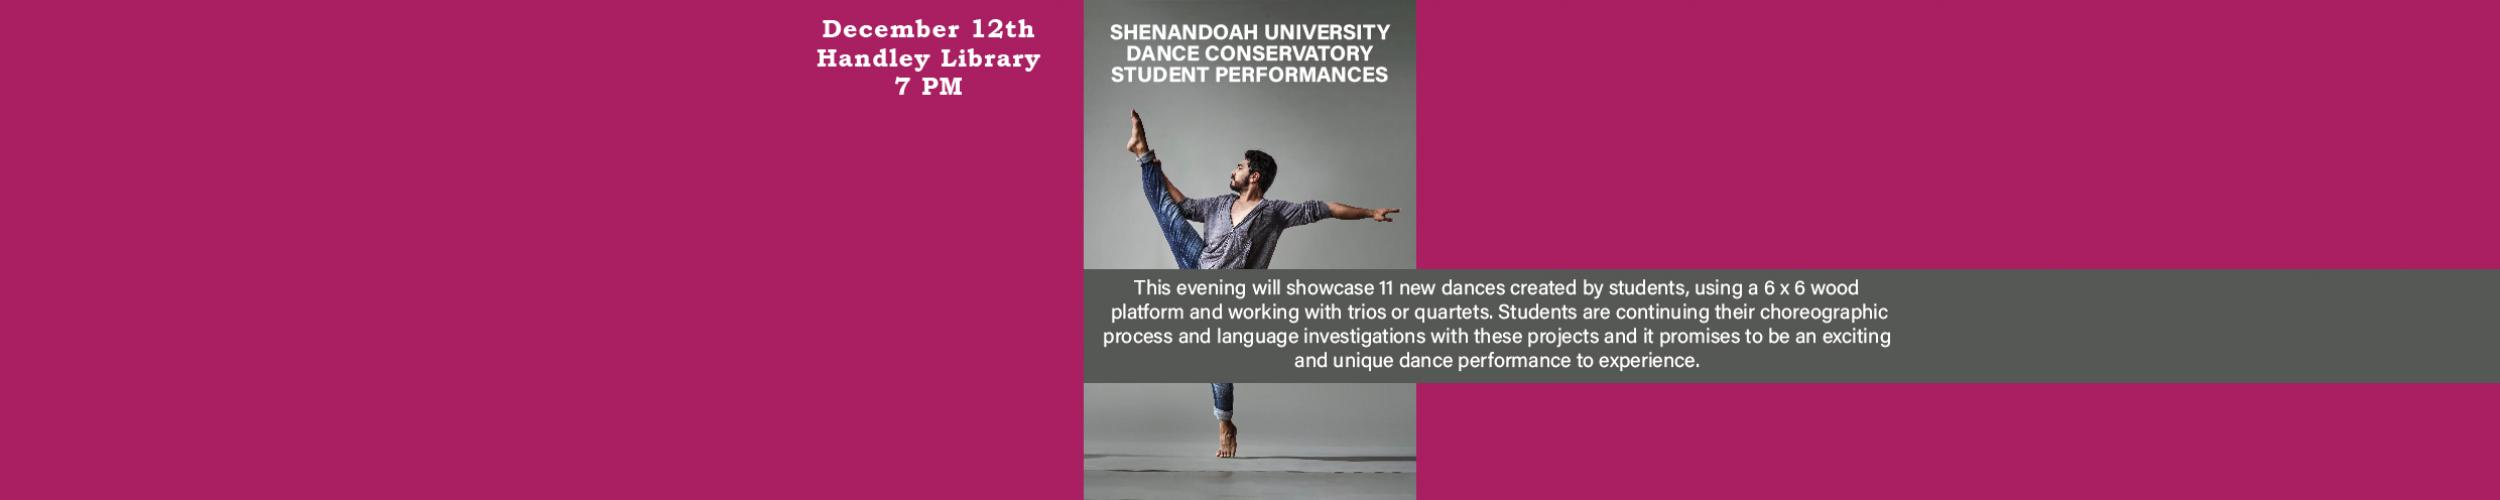 12.12.19 Shenandoah Dance Performance